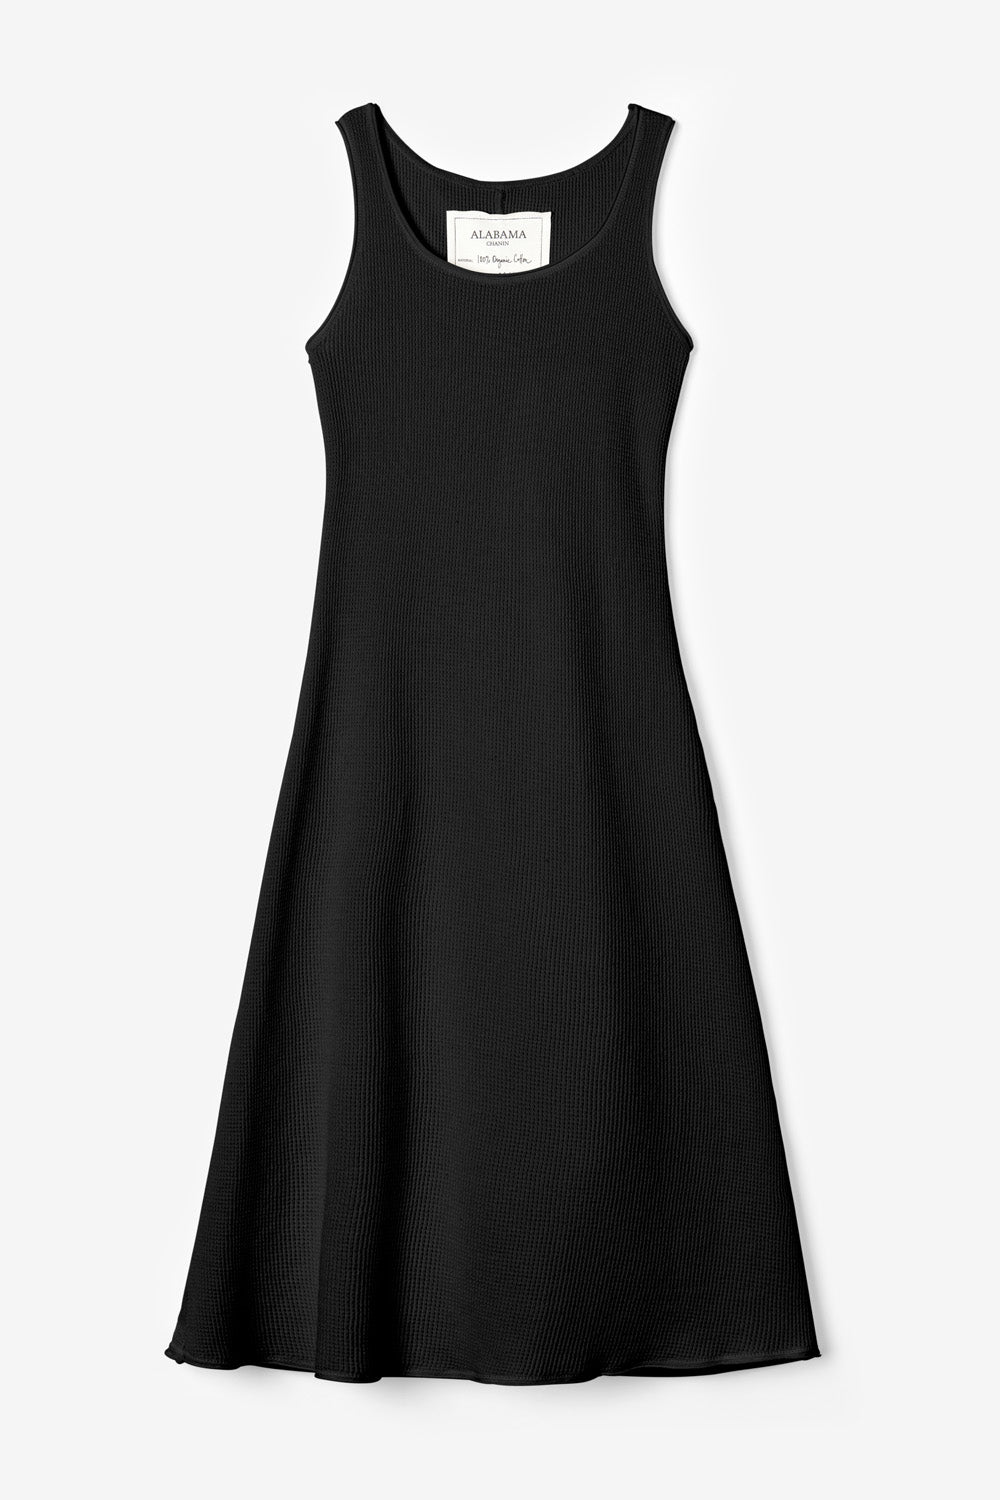 Alabama Chanin The Slip Dress Organic Cotton Fitted Dress in Black